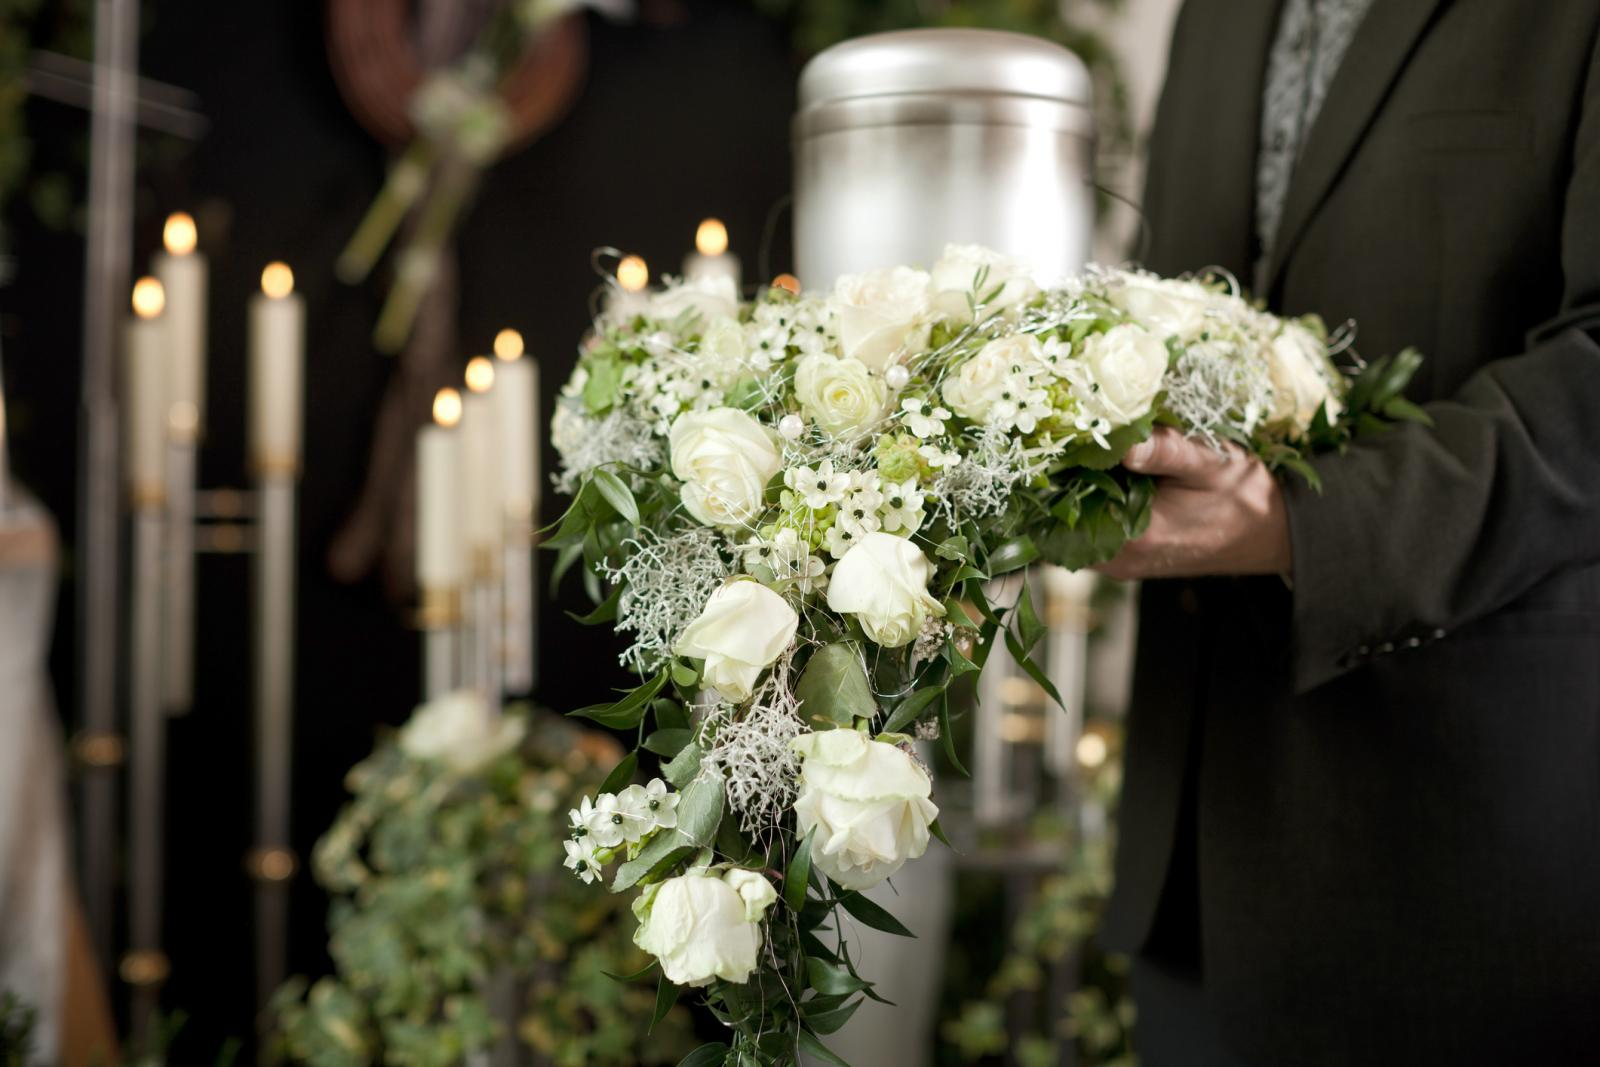 Flowers of grief at funeral